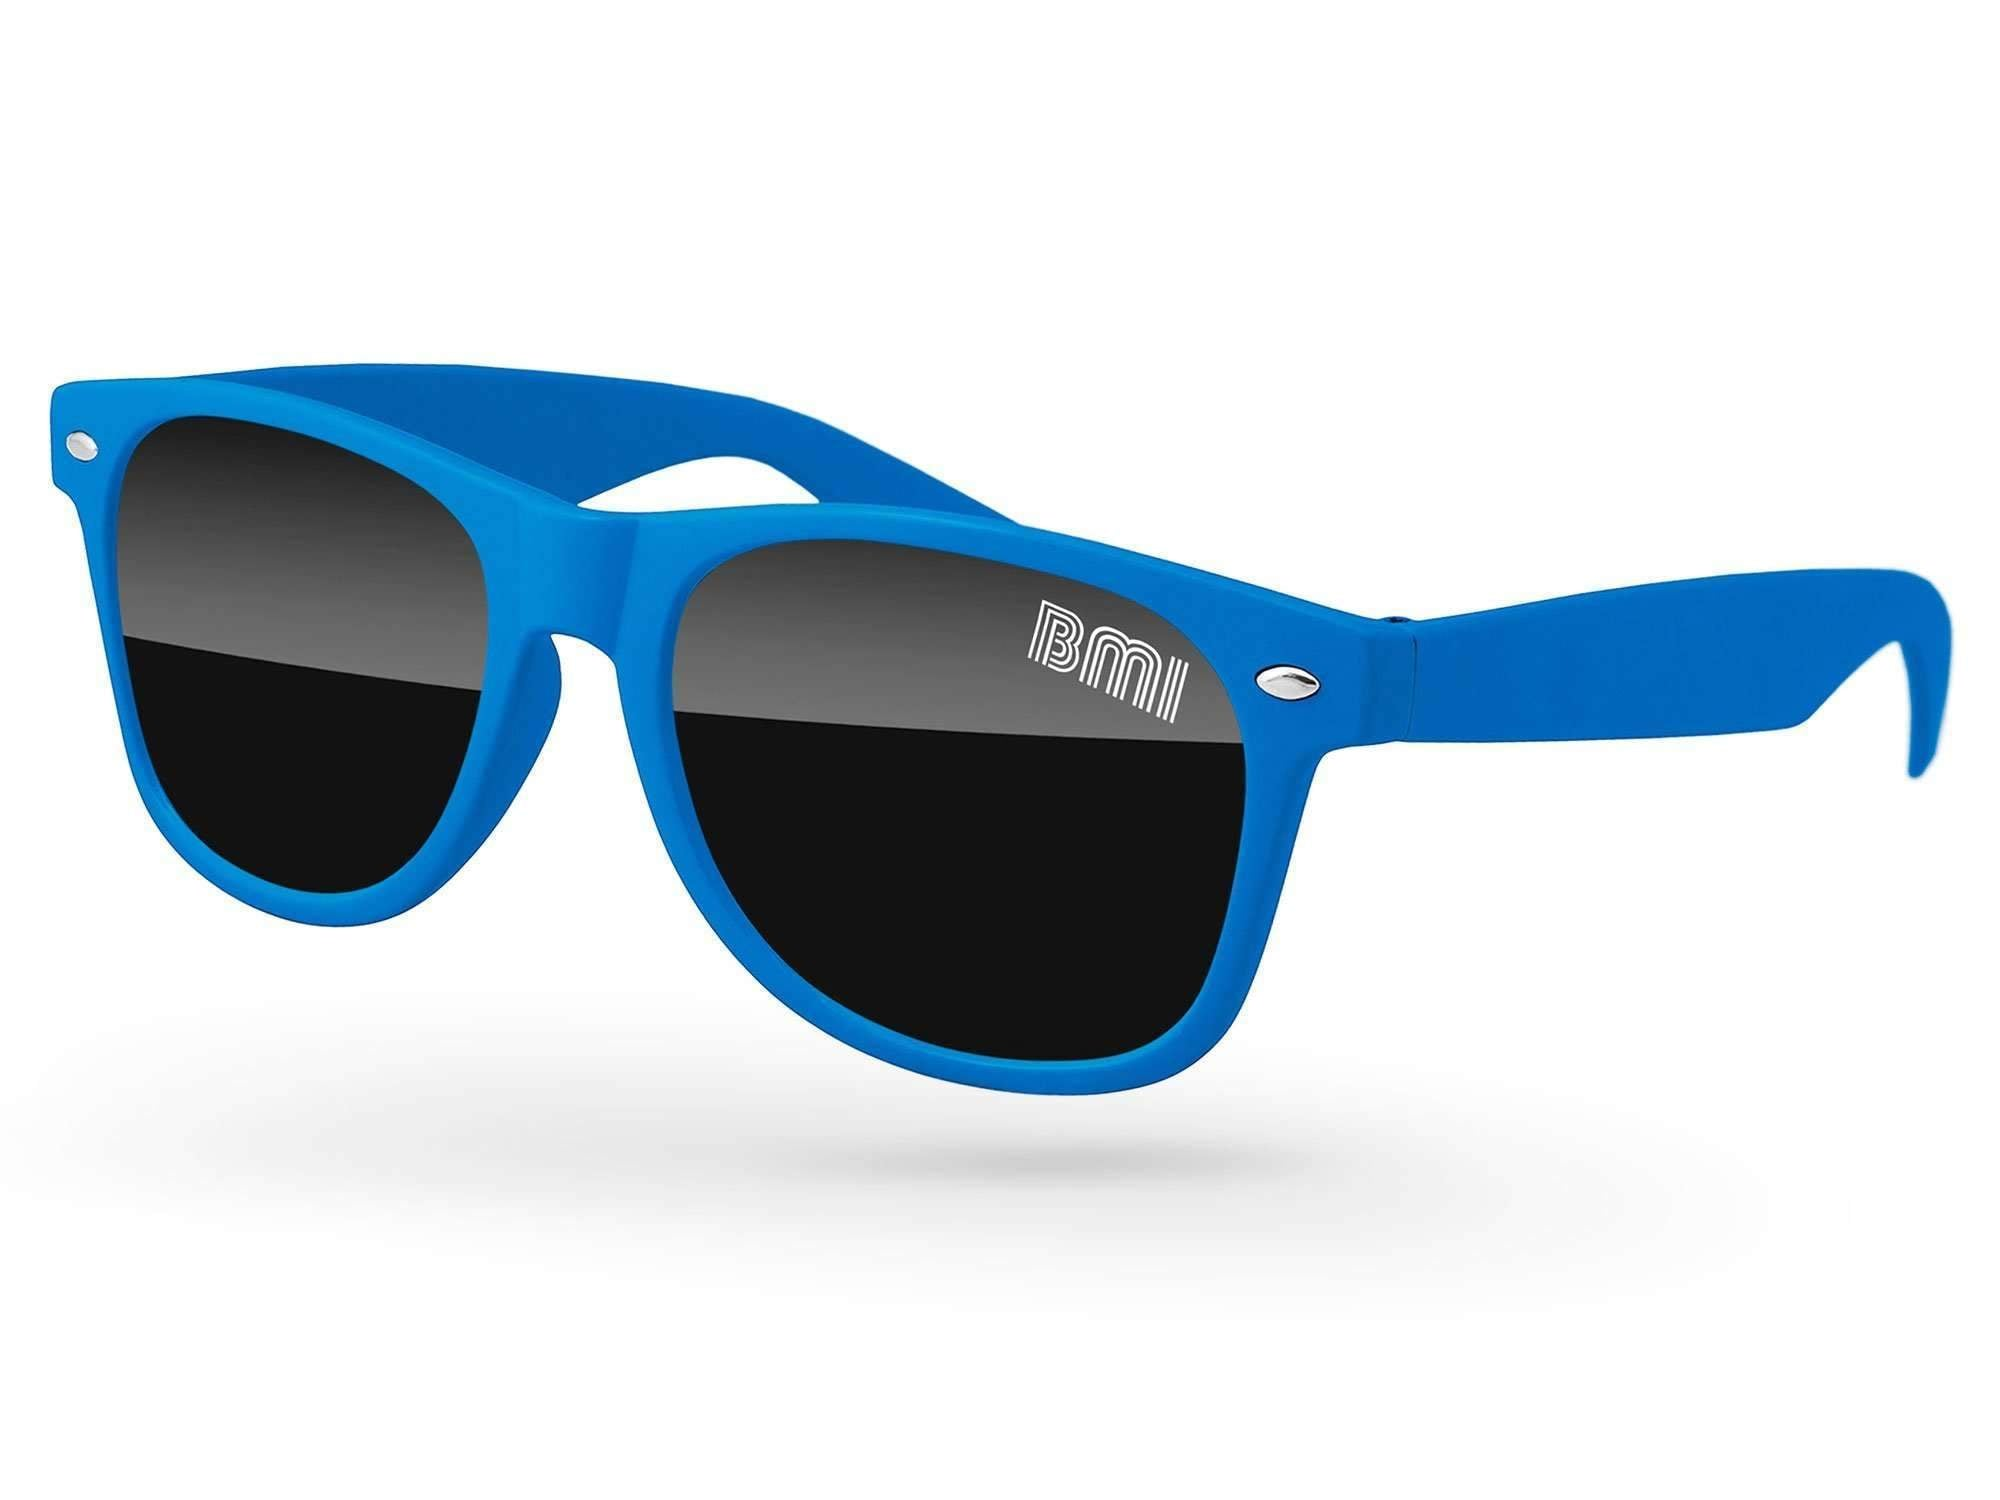 Retro Promotional Sunglasses w/ 1-color lens imprint